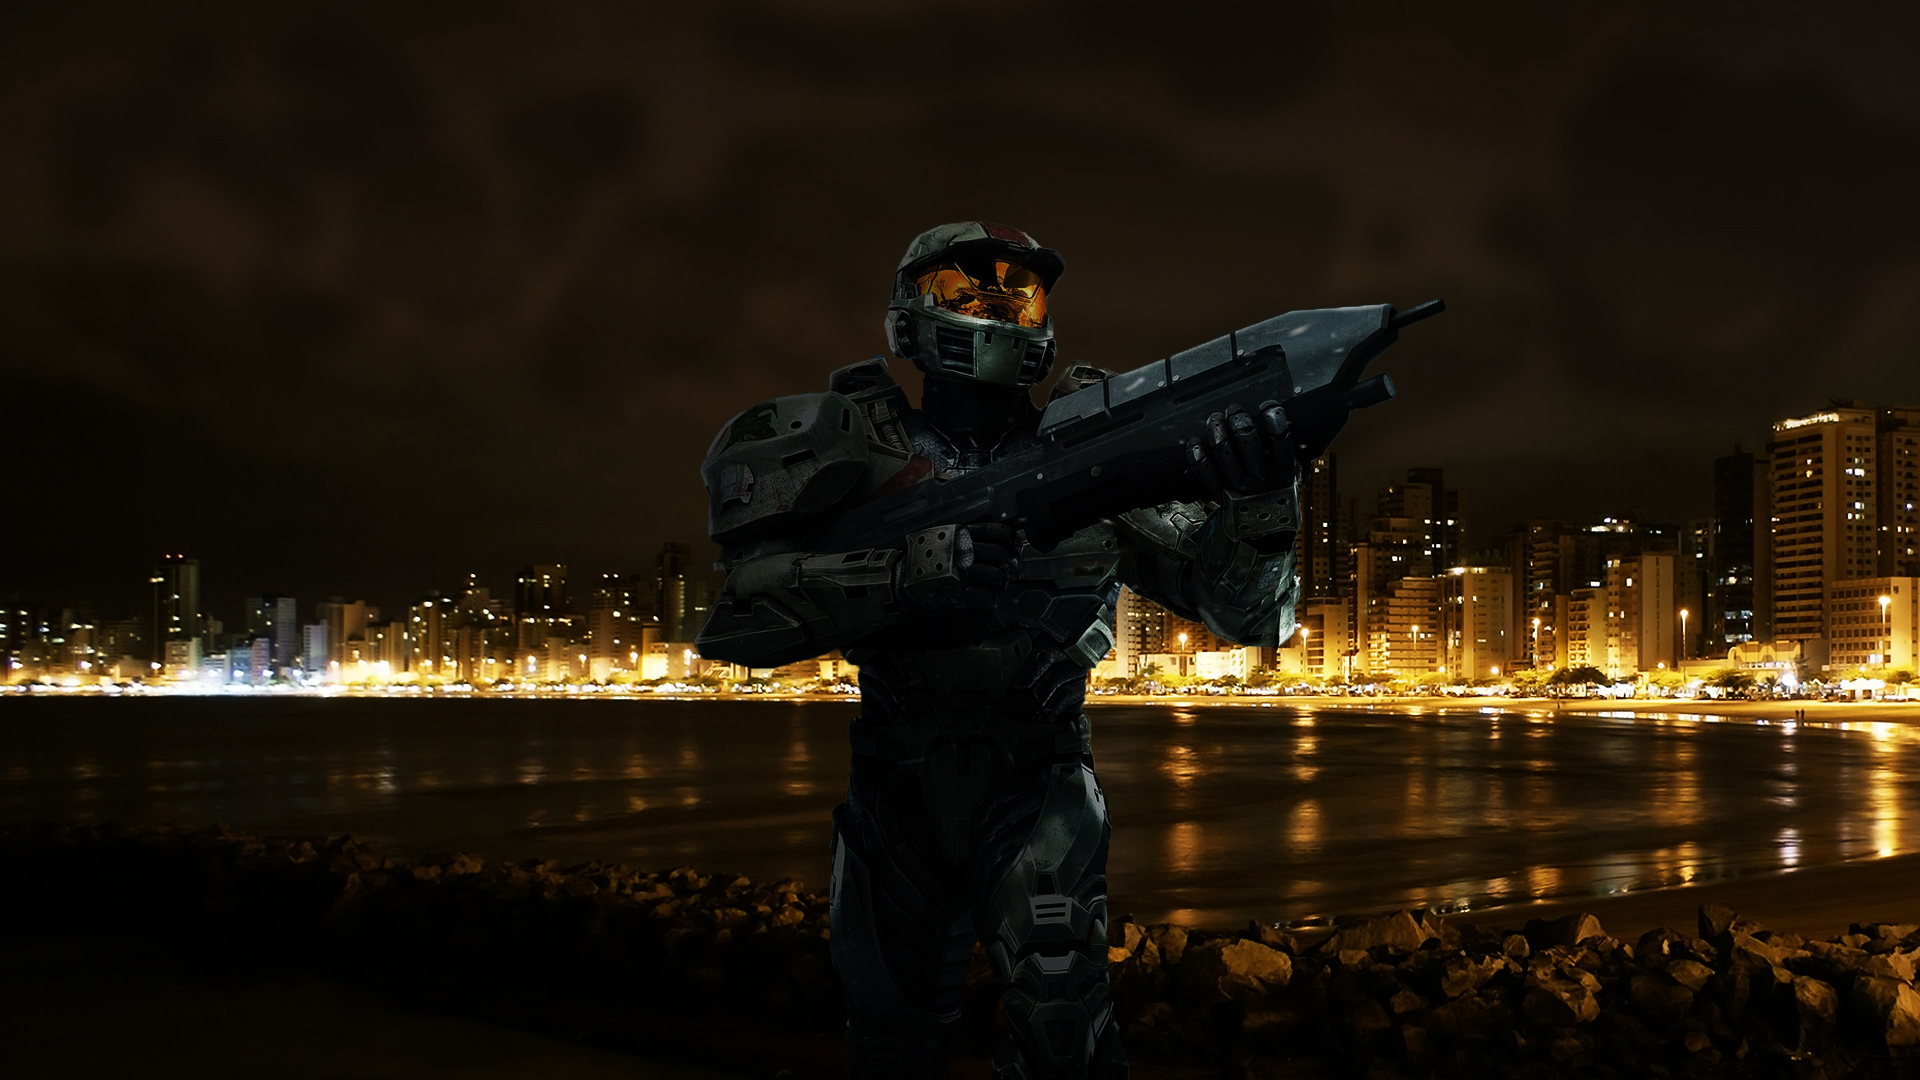 Epic Halo Space Battle Wallpaper Video game   halo wallpapers 1920x1080